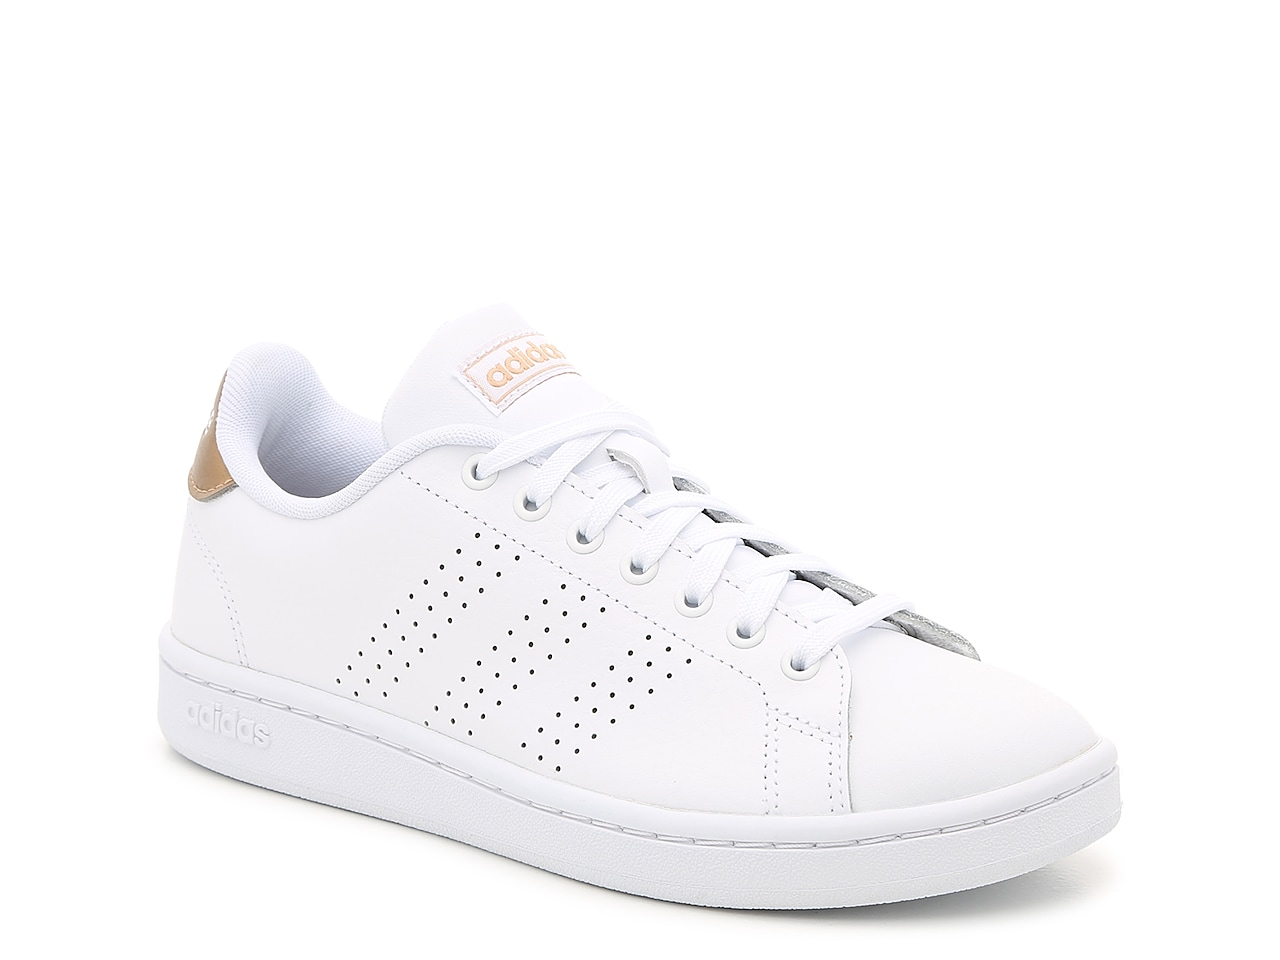 Advantage Sneaker - Women's